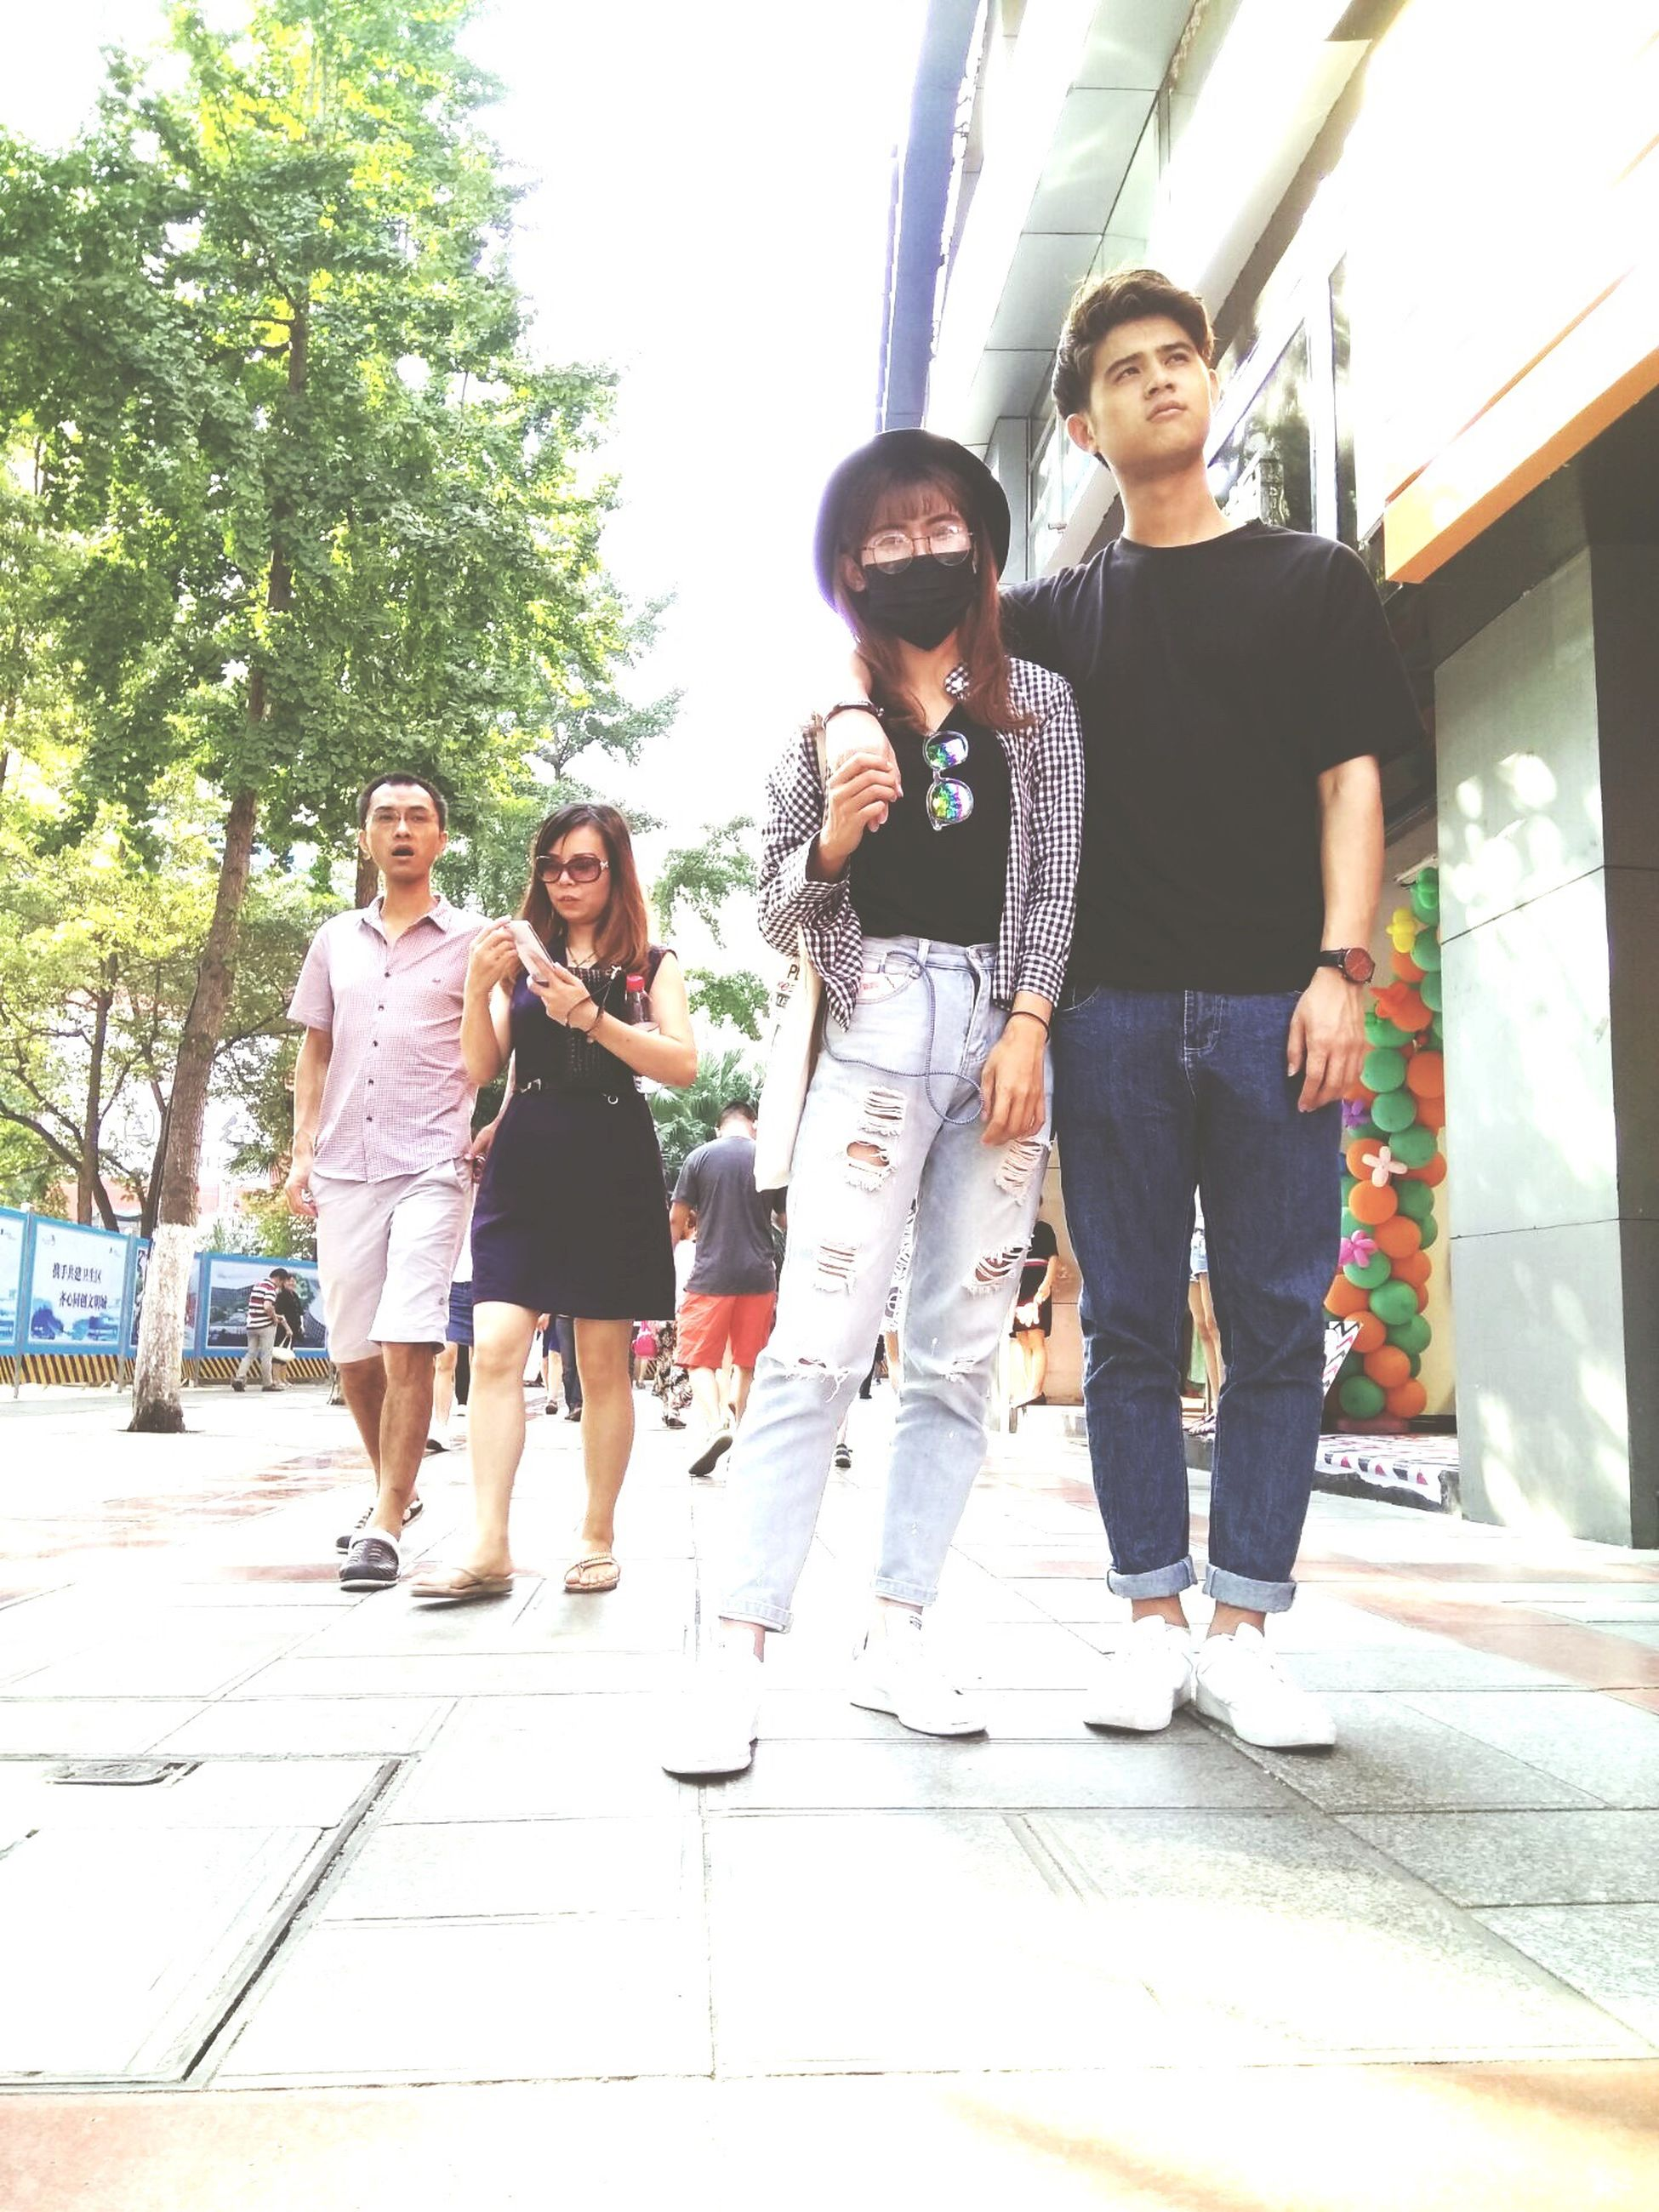 togetherness, love, bonding, lifestyles, leisure activity, young adult, casual clothing, full length, tree, person, young men, happiness, standing, friendship, front view, day, family, looking at camera, well-dressed, outdoors, handsome